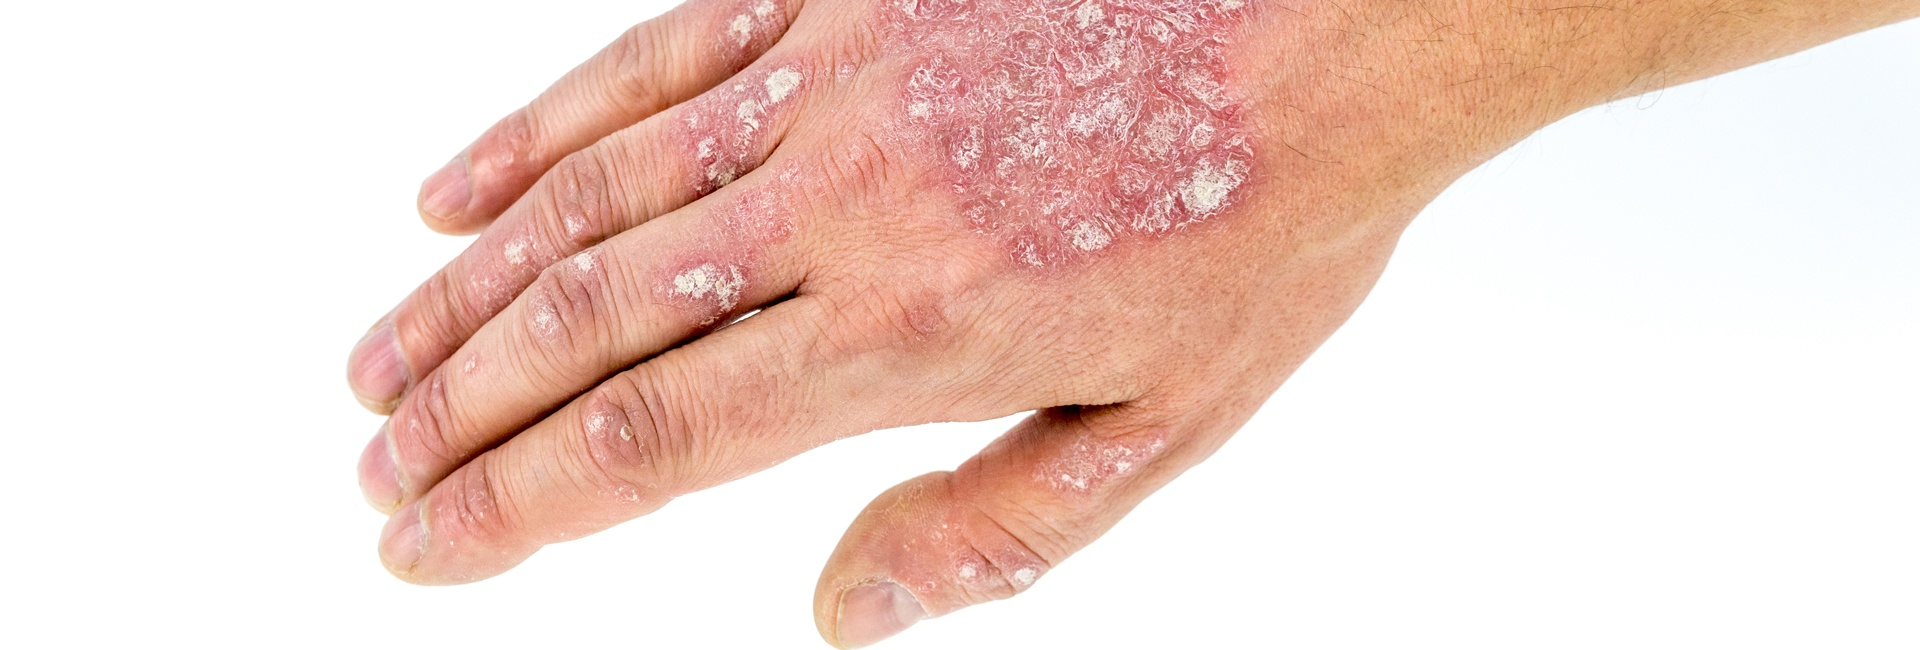 Psoriasis Treatments: What Can Cause it and Can You Prevent it